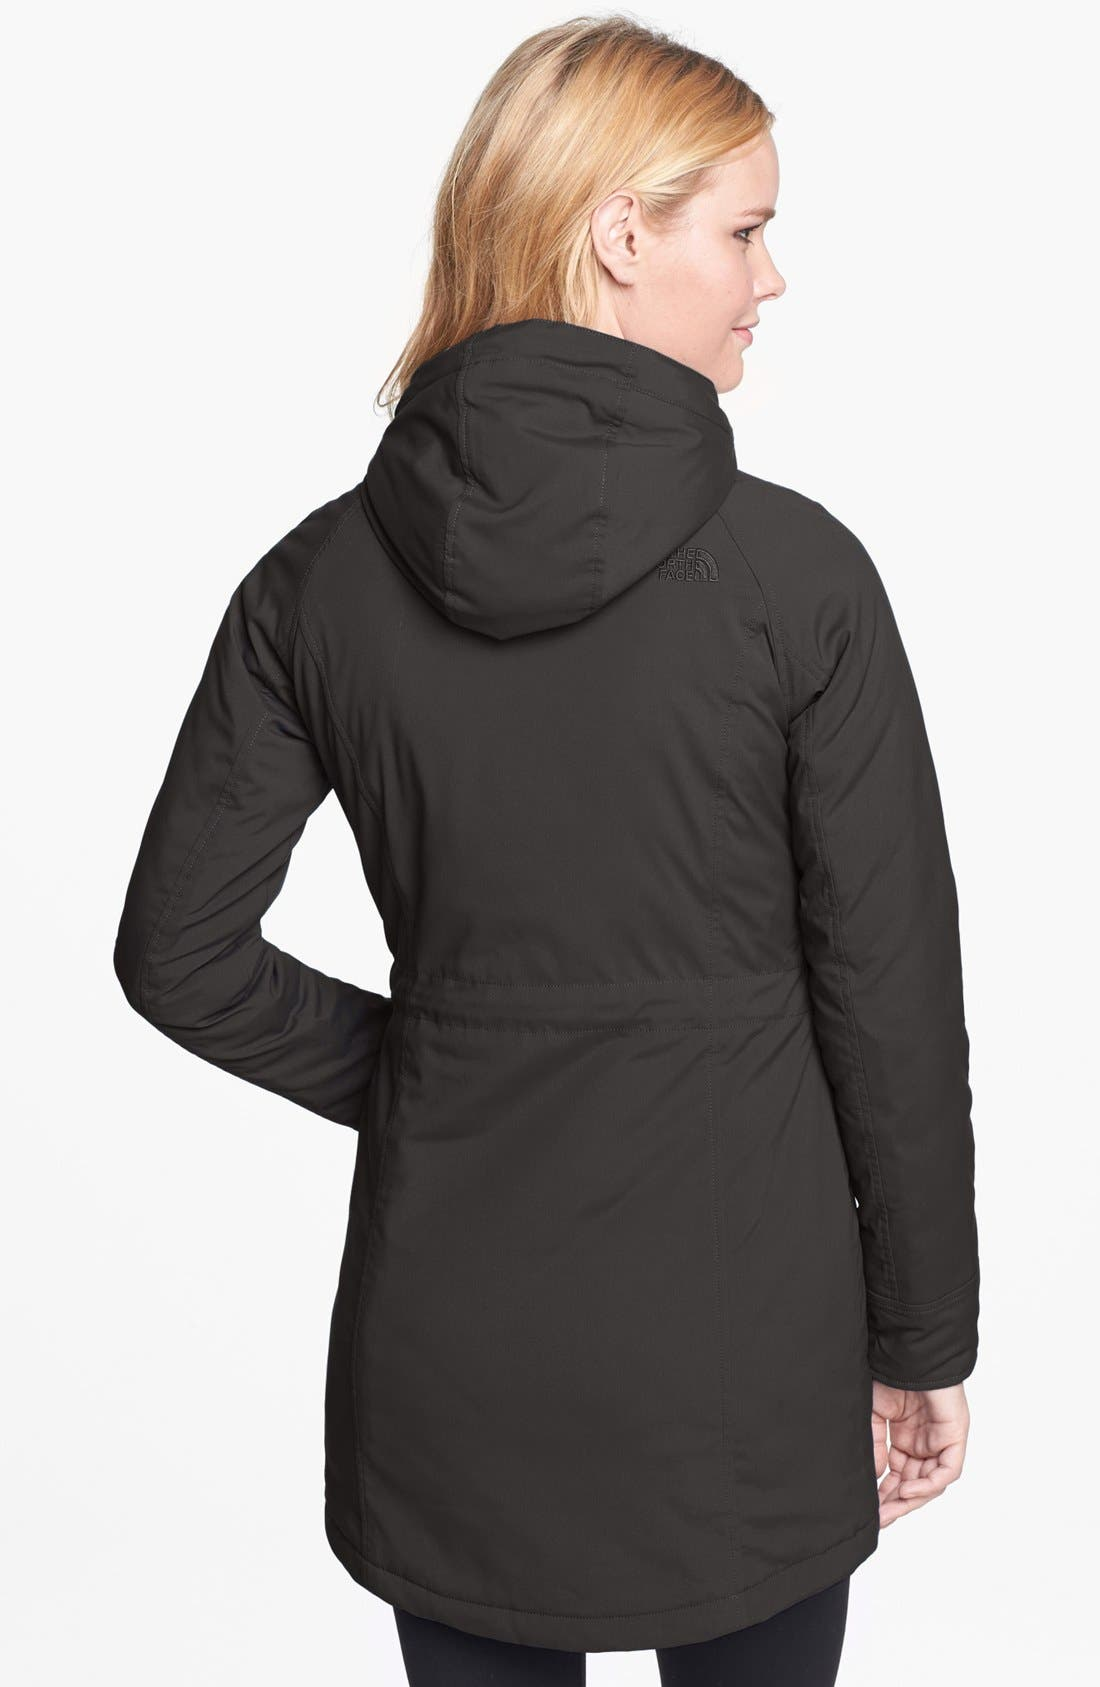 THE NORTH FACE, 'Lola' Soft Shell Trench Coat, Alternate thumbnail 2, color, 001